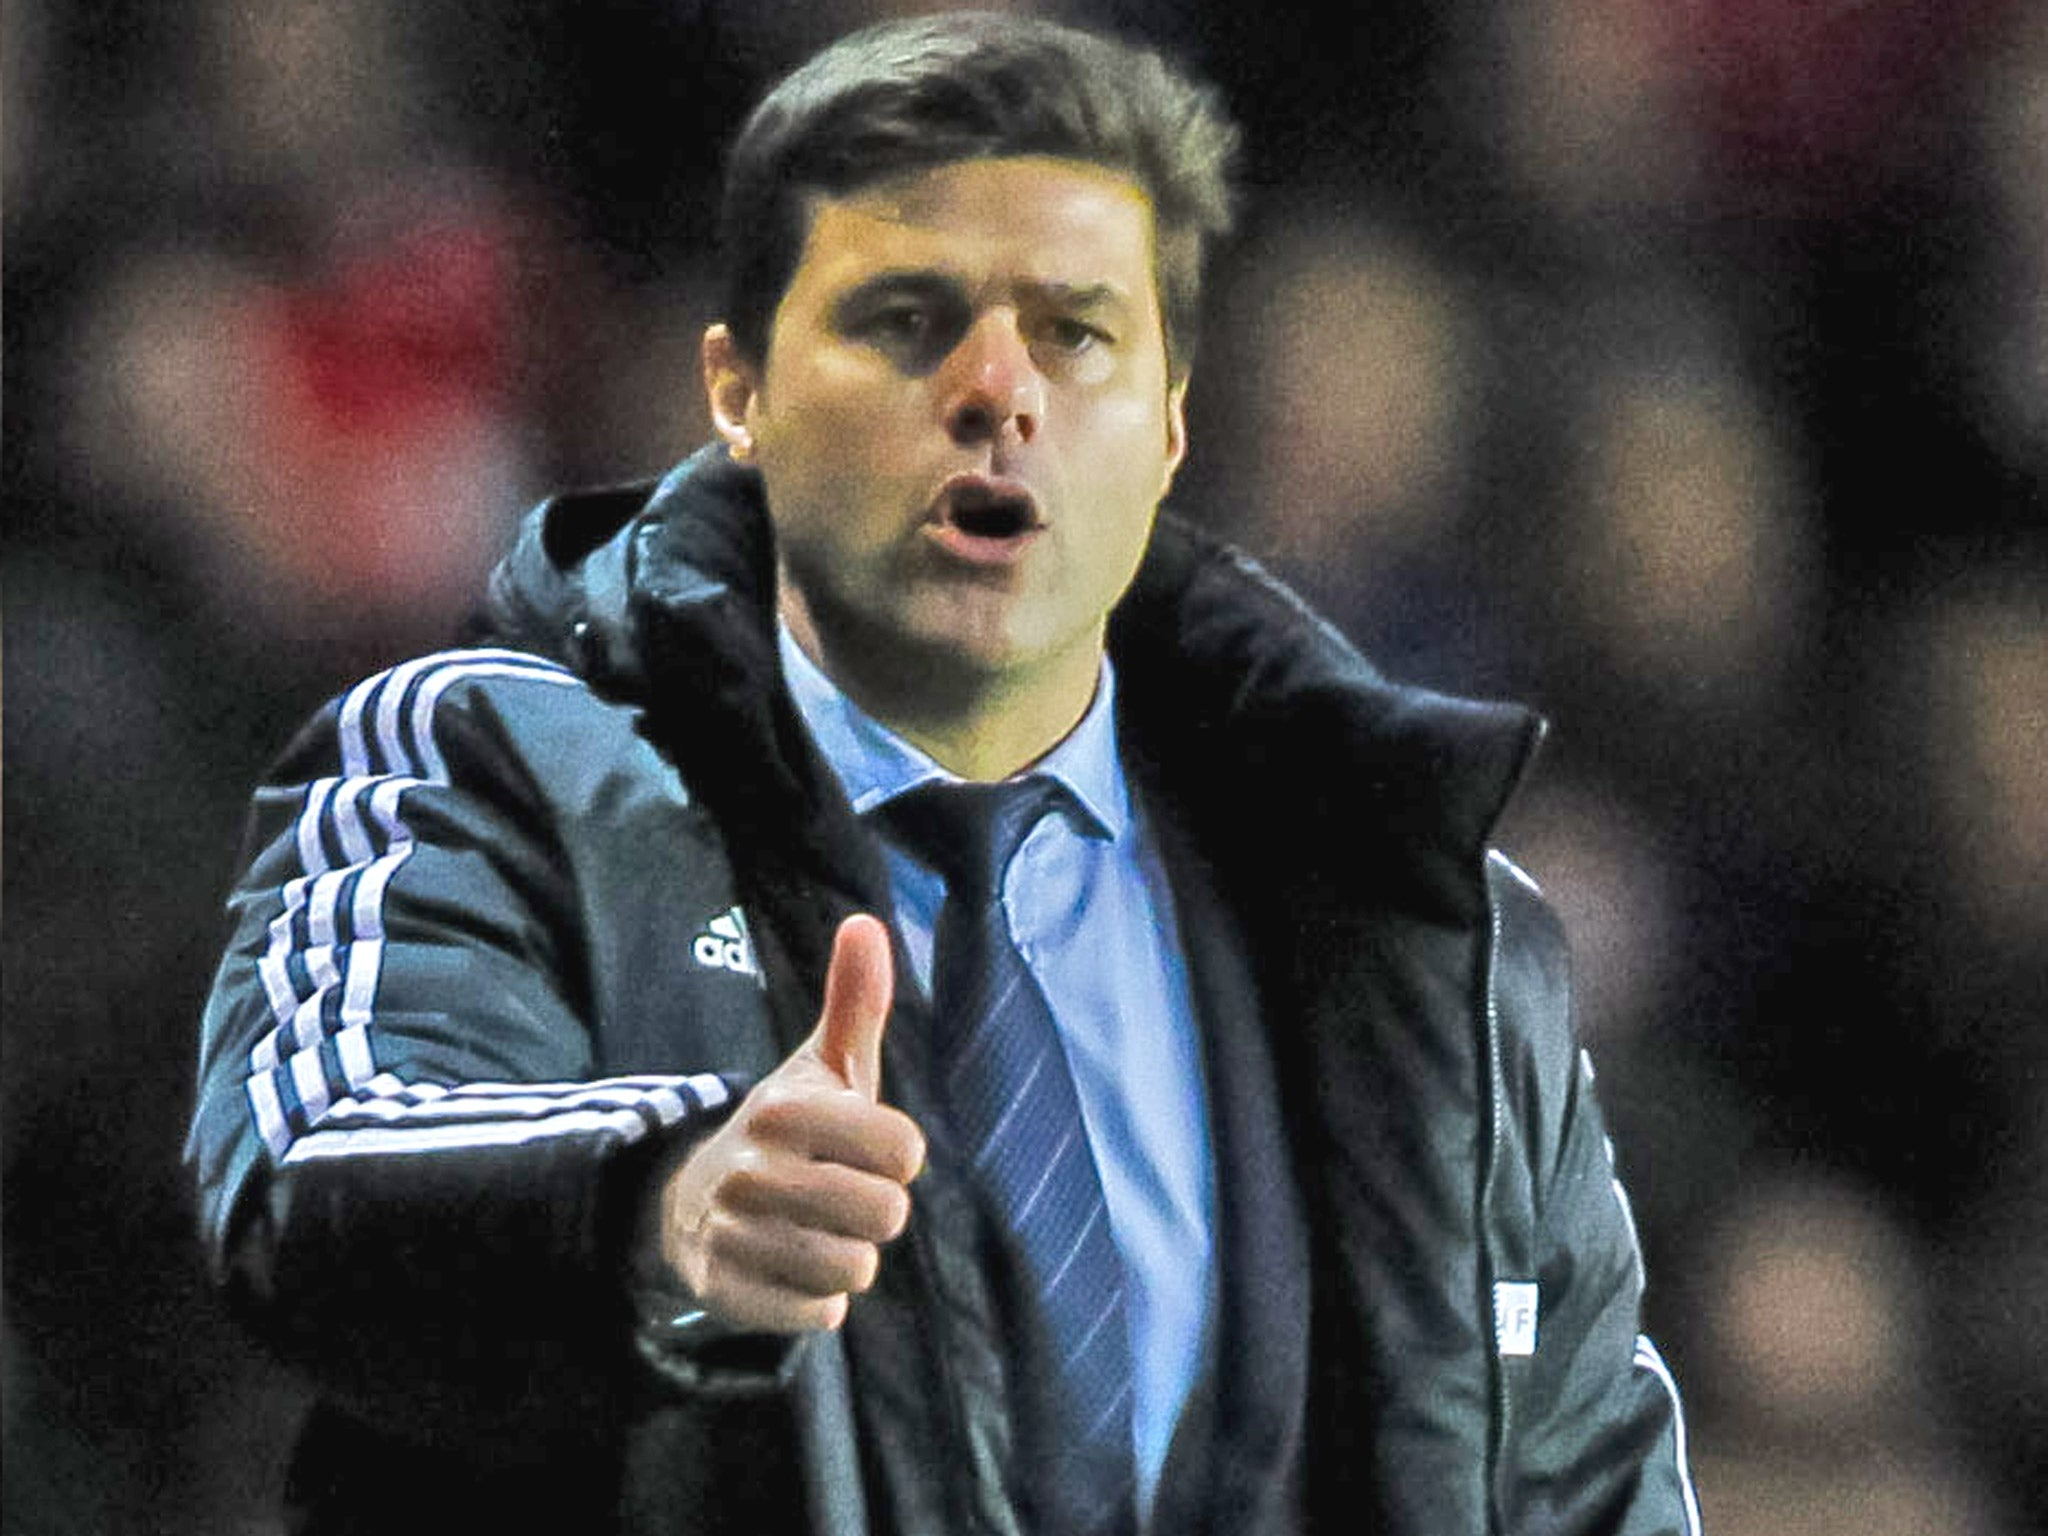 Mauricio Pochettino Profile Son Of Farm Labourer Will Take Hard Working Ethos From Southampton To Tottenham The Independent The Independent